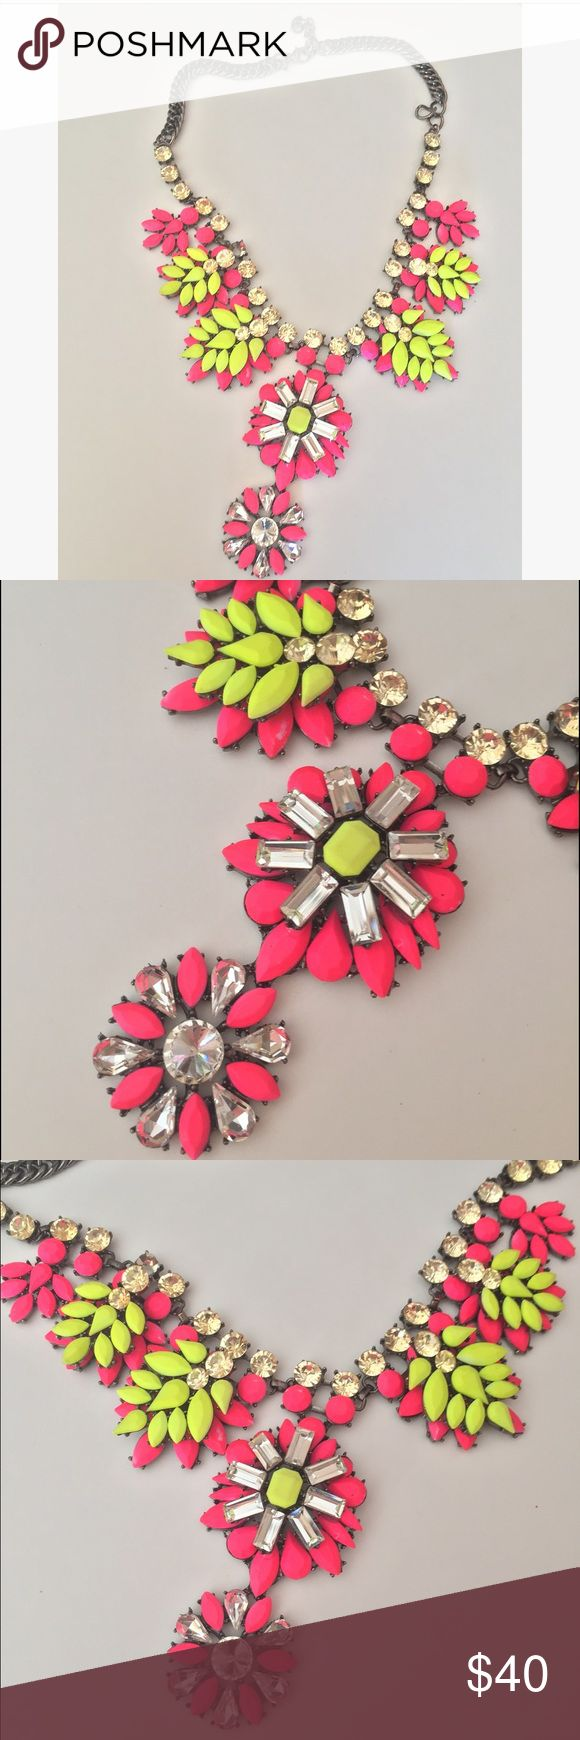 Neon yellow and pink statement necklace from Lotus Trendy necklace that looks amazing on! Photographs beautifully. Great for a night out!! Jewelry Necklaces